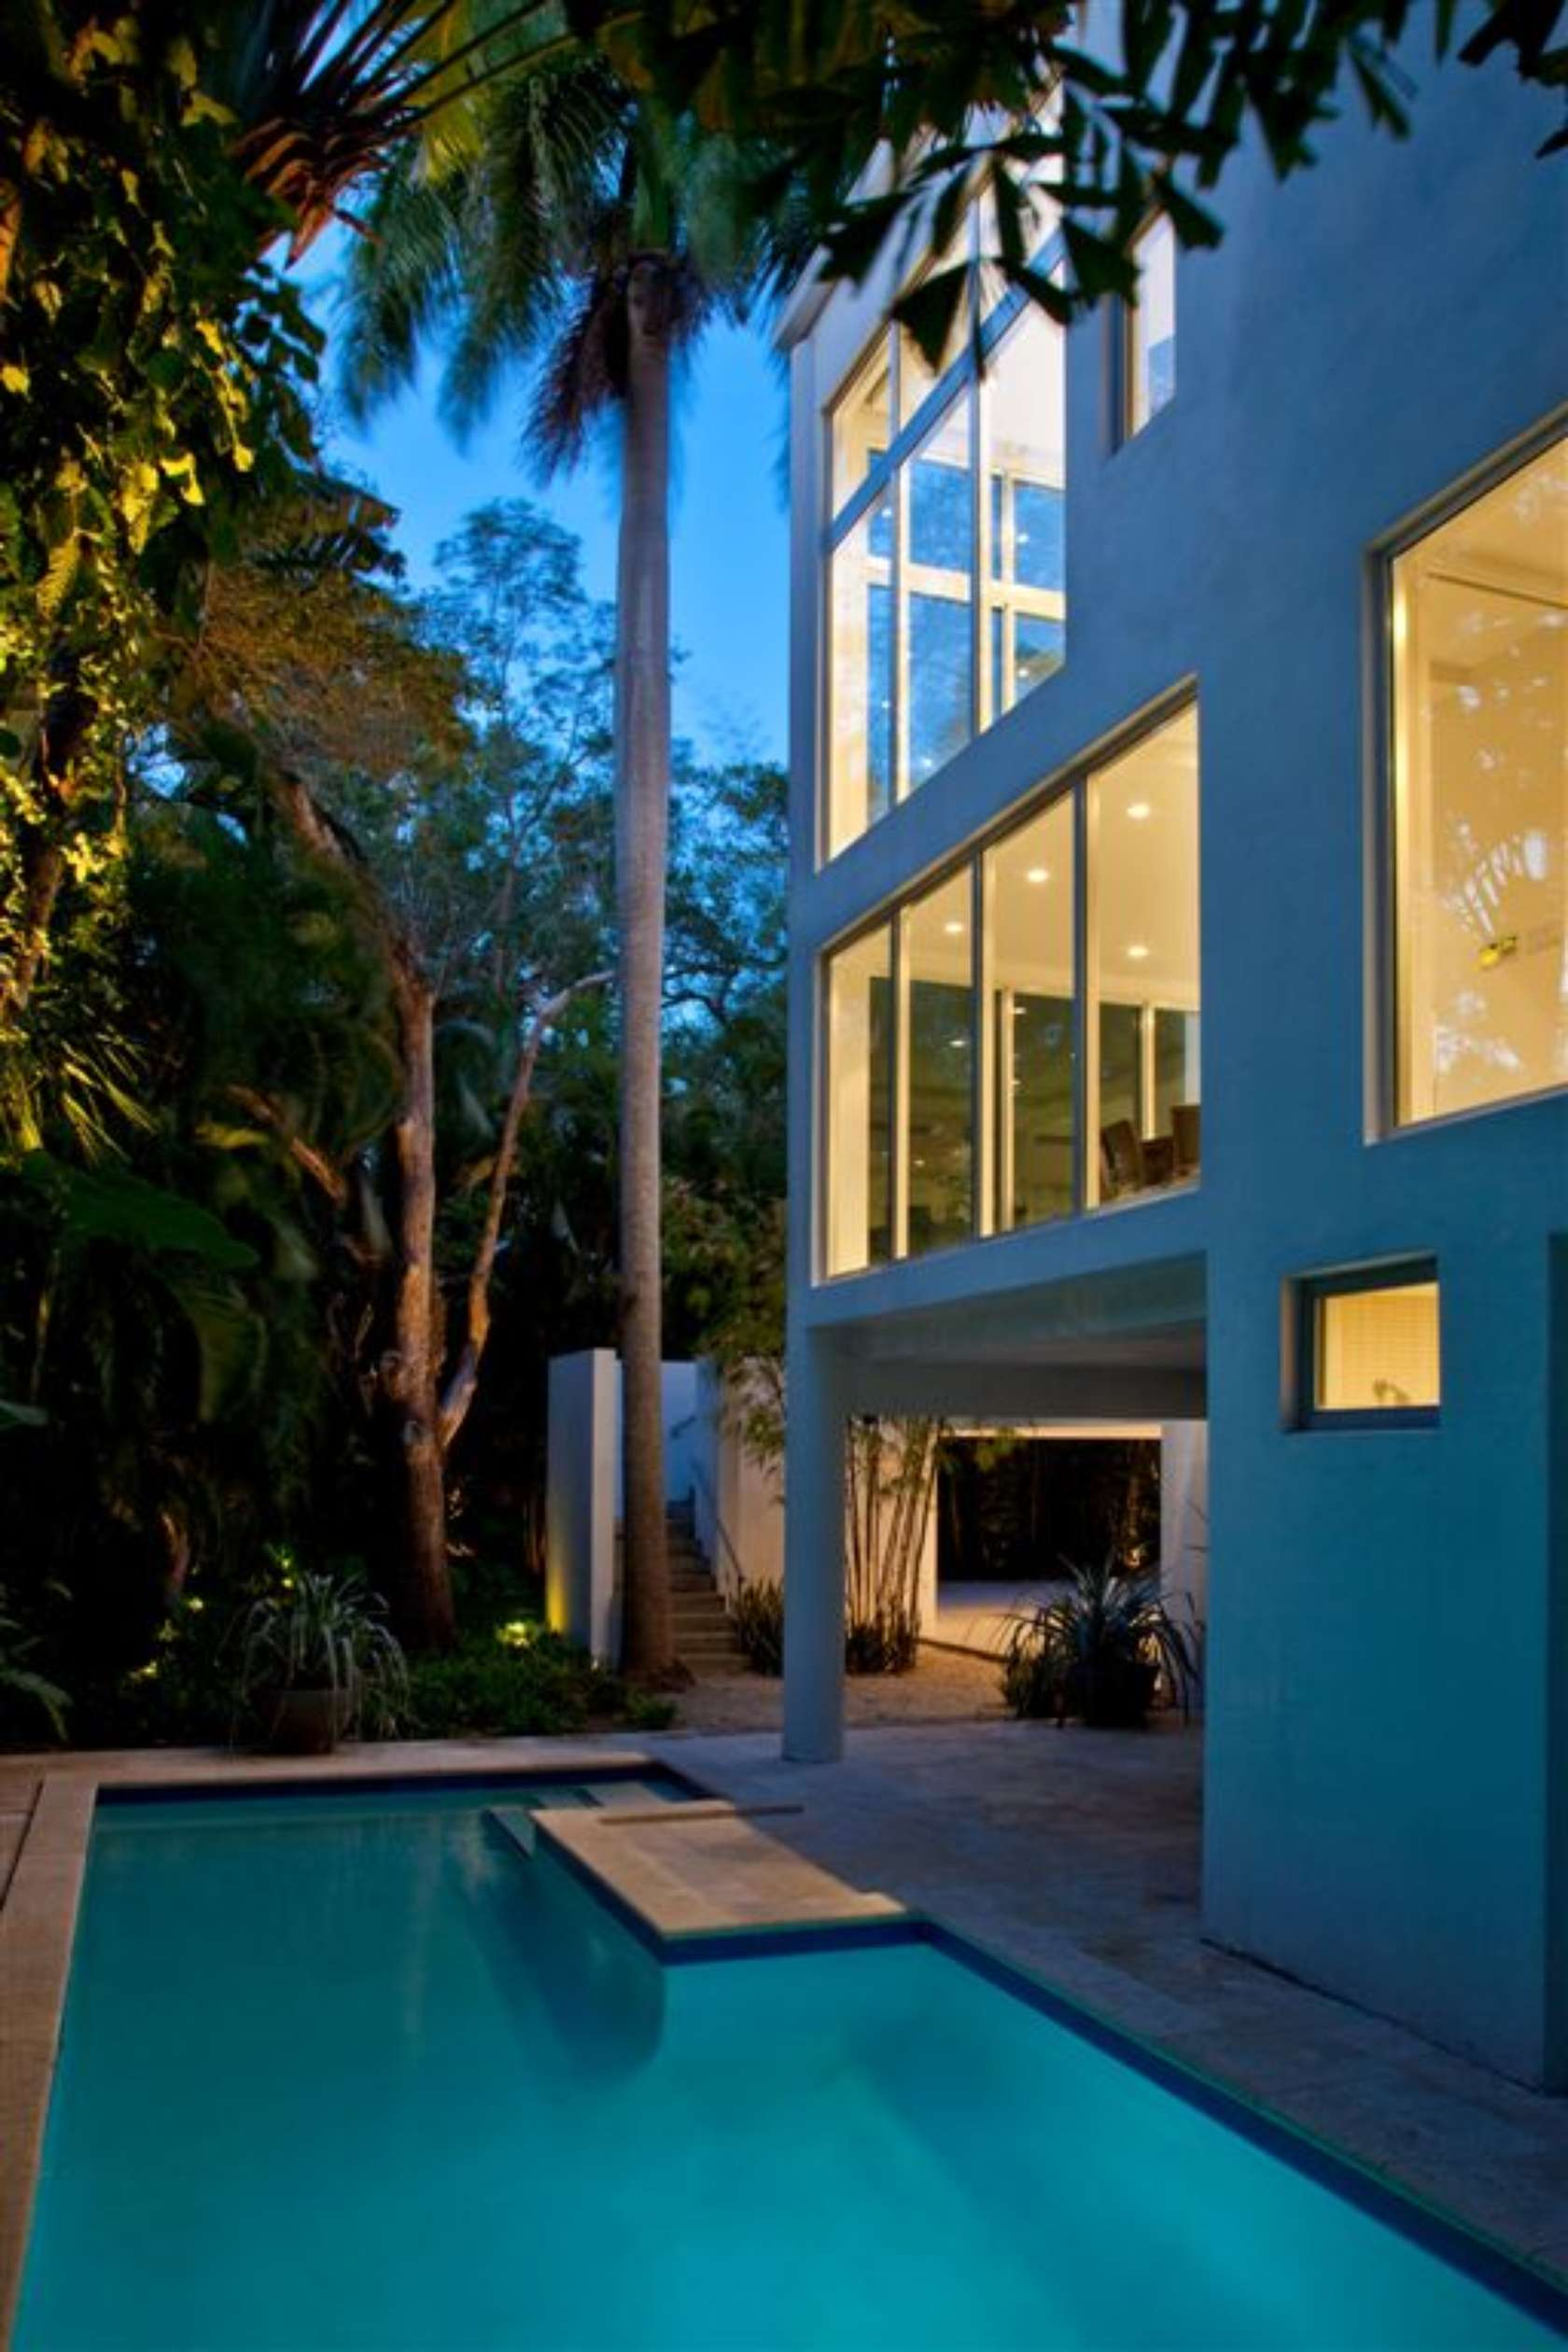 Calm and Minimalistic Spaces of Utopia Residence Coconut Grove by [STRANG] Architecture-01